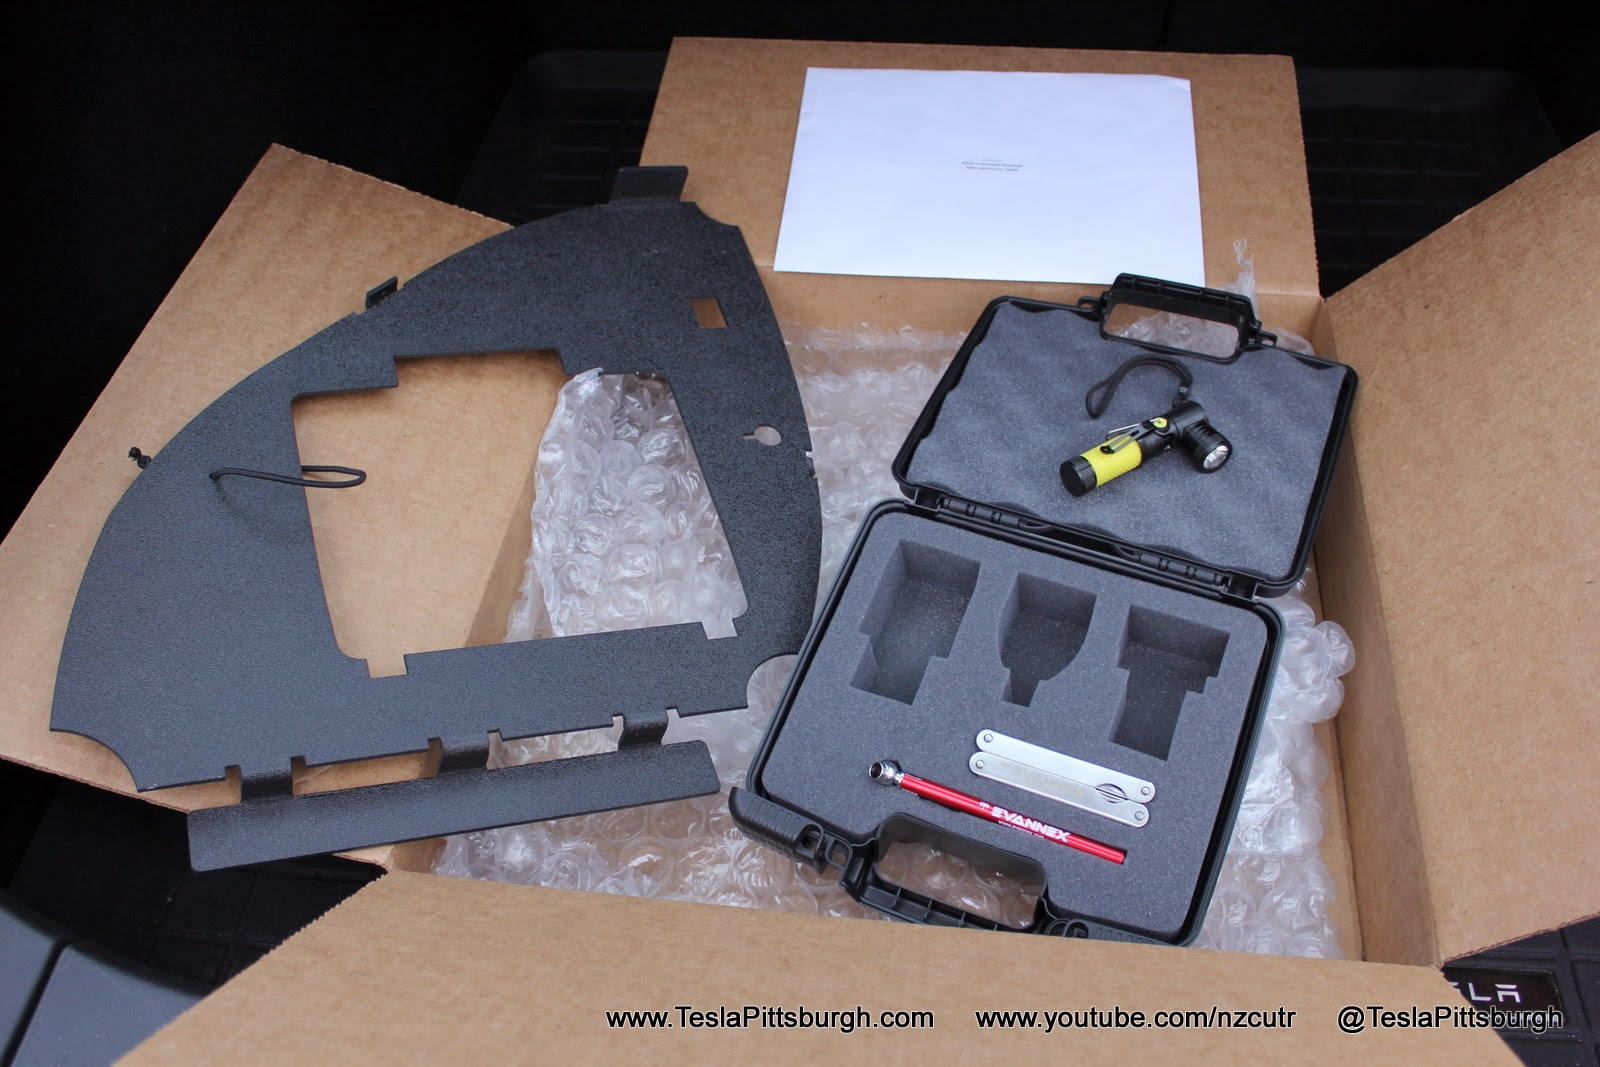 Model-S-Charge-Adapter-Lighting-Case-2